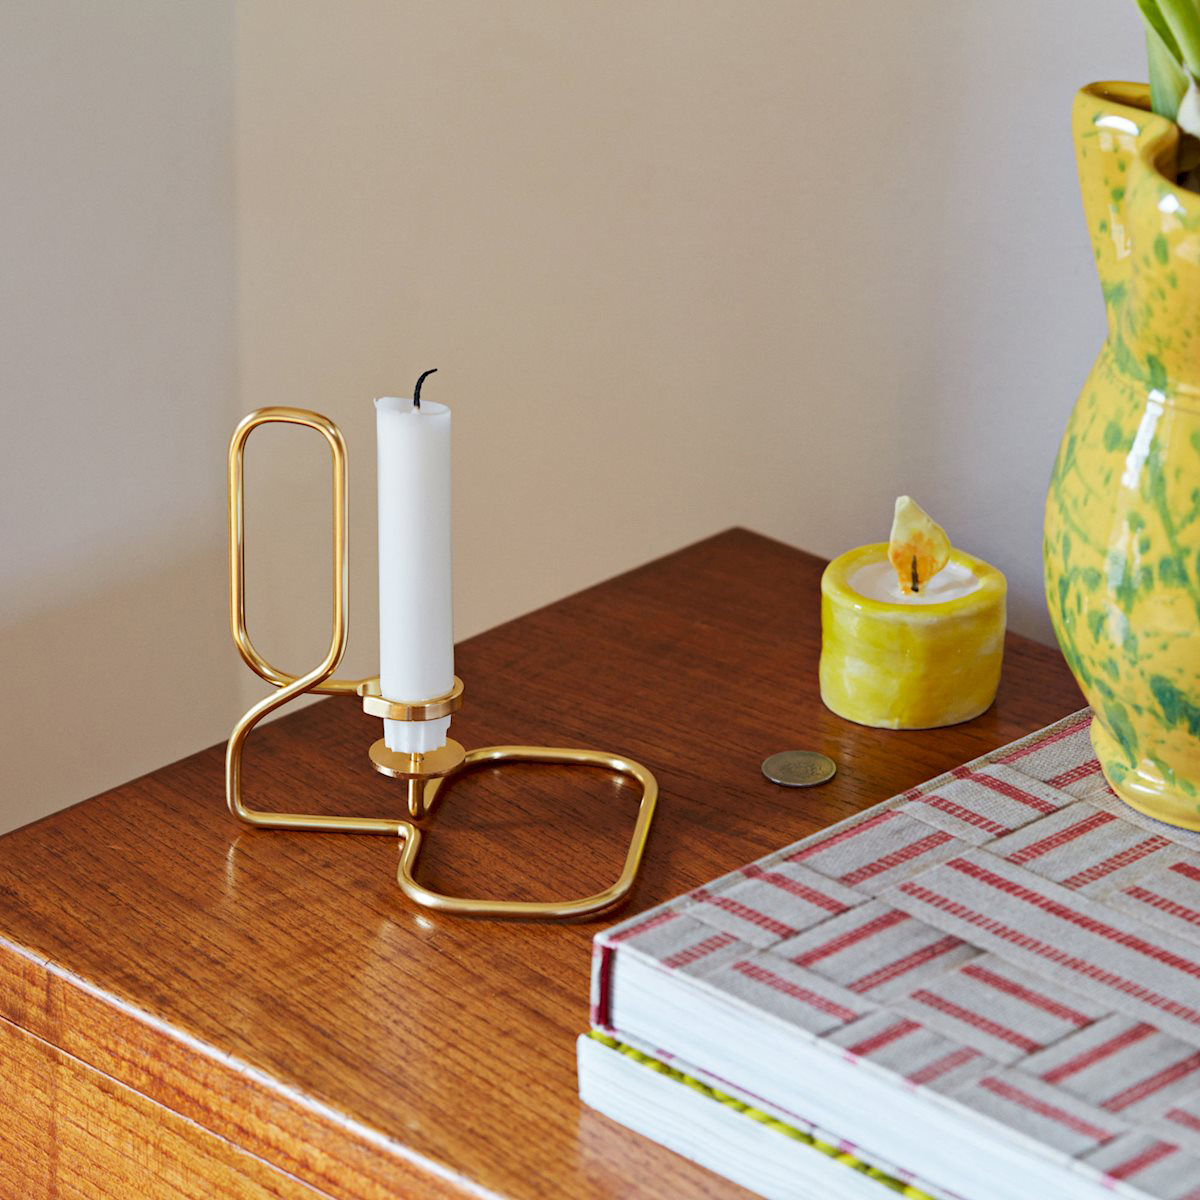 41 Design Candle Holders To Light Up The Christmas Atmosphere # Meuble Tv Zodio